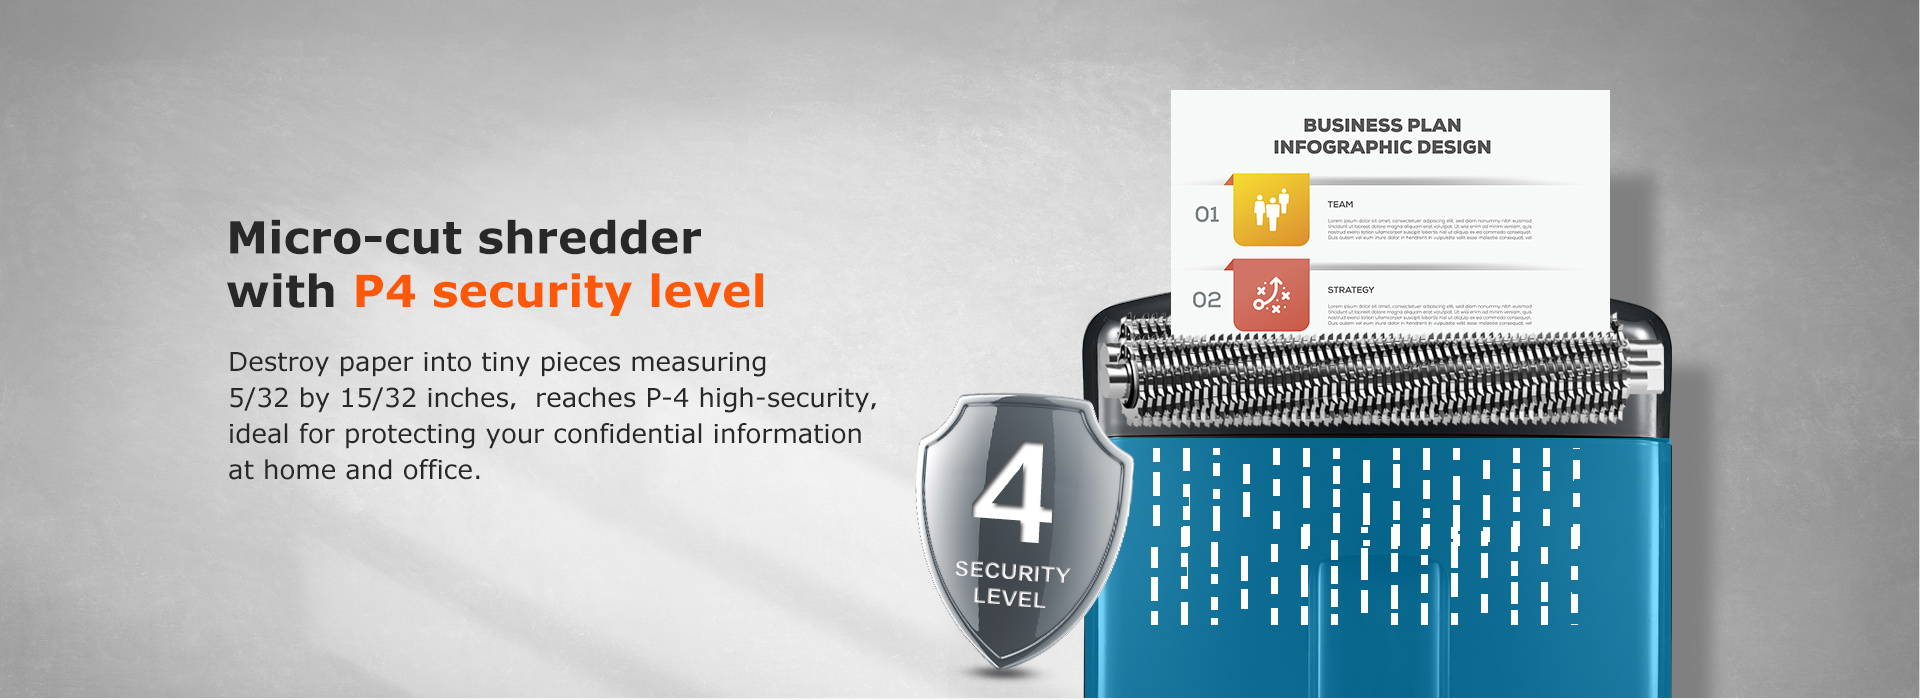 Micro-cut shredder with P4 security level  Destroy paper into tiny pieces measuring 5/32 by 15/32 inches,reaches P-4 high-security,ideal for protecting your confidential information at home and office.